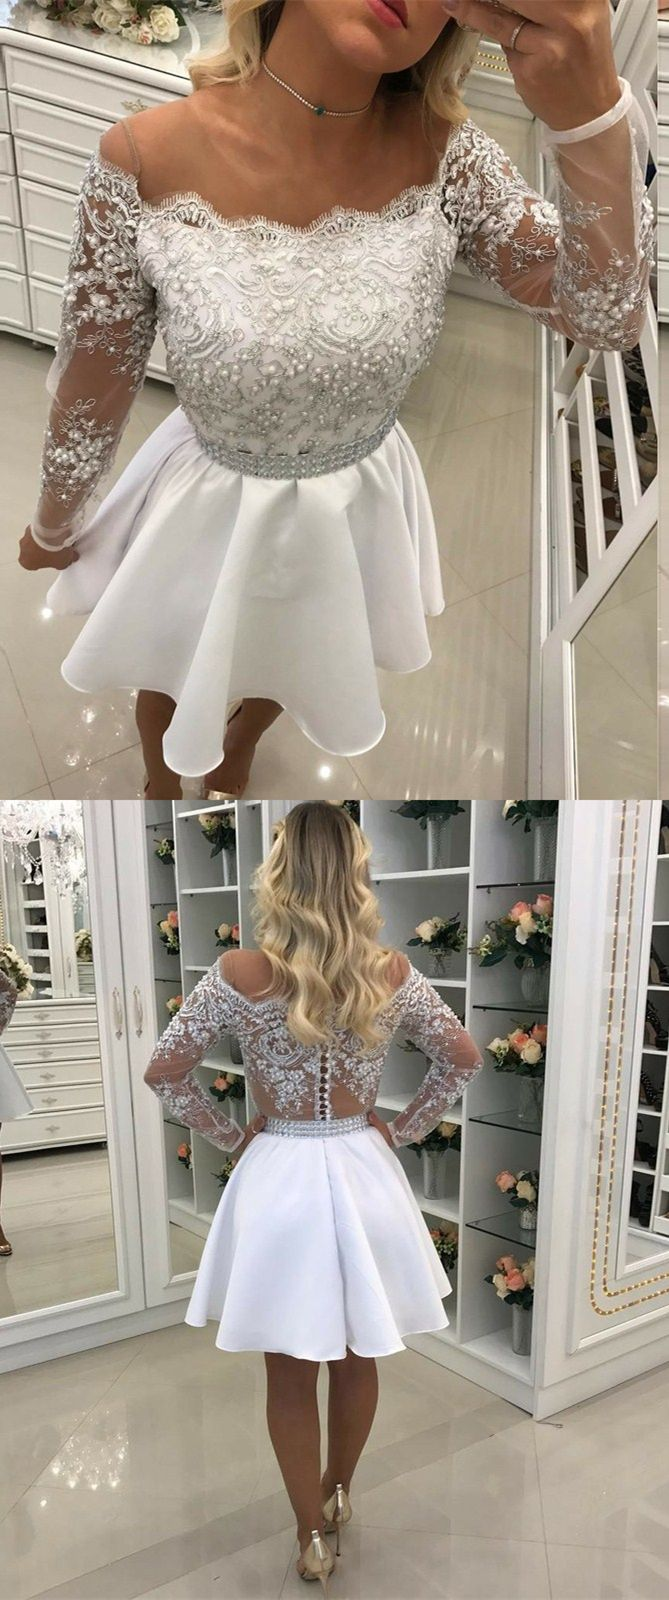 3402e70c45 A-Line Off the Shoulder Long Sleeves White Satin Short Homecoming ...